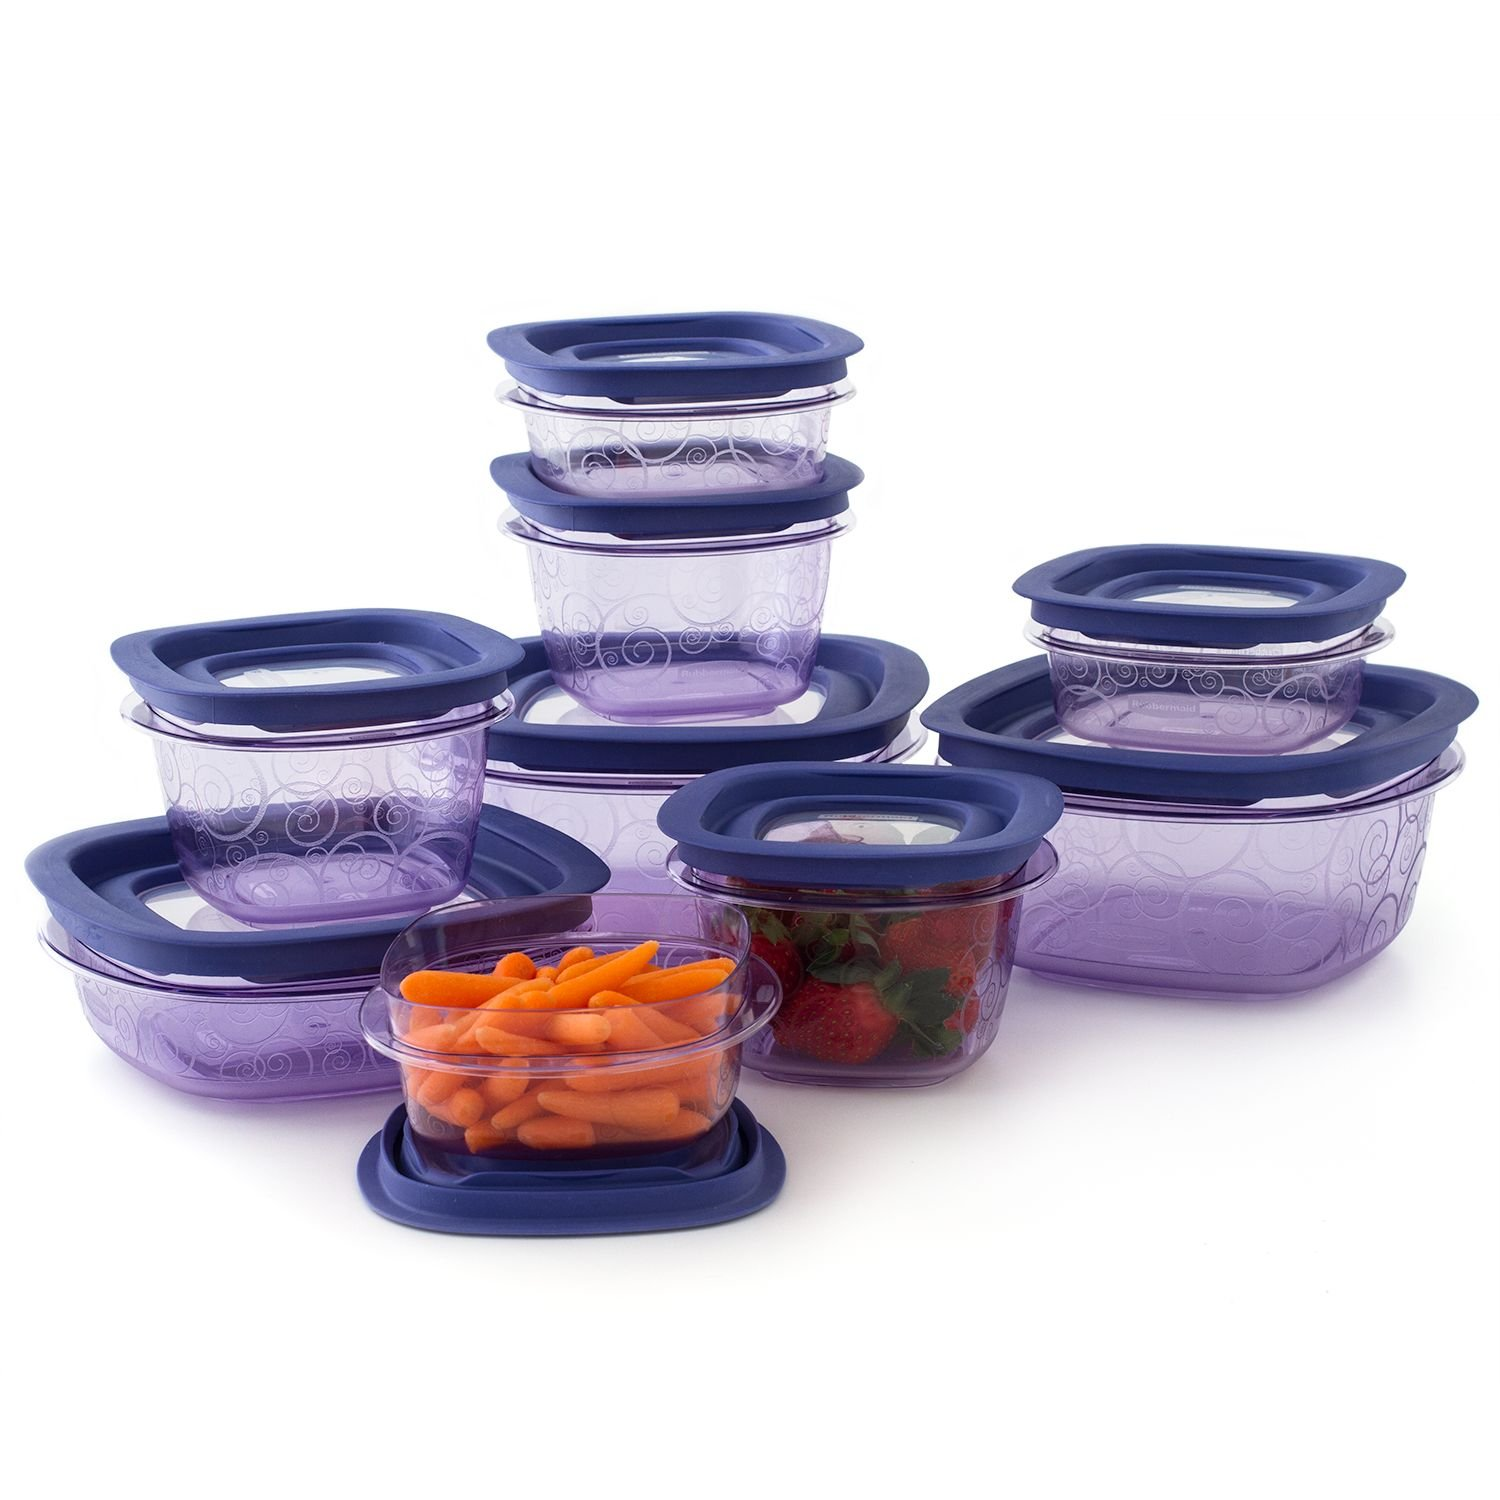 Rubbermaid Premier Tint Food Storage Set - 18pc.